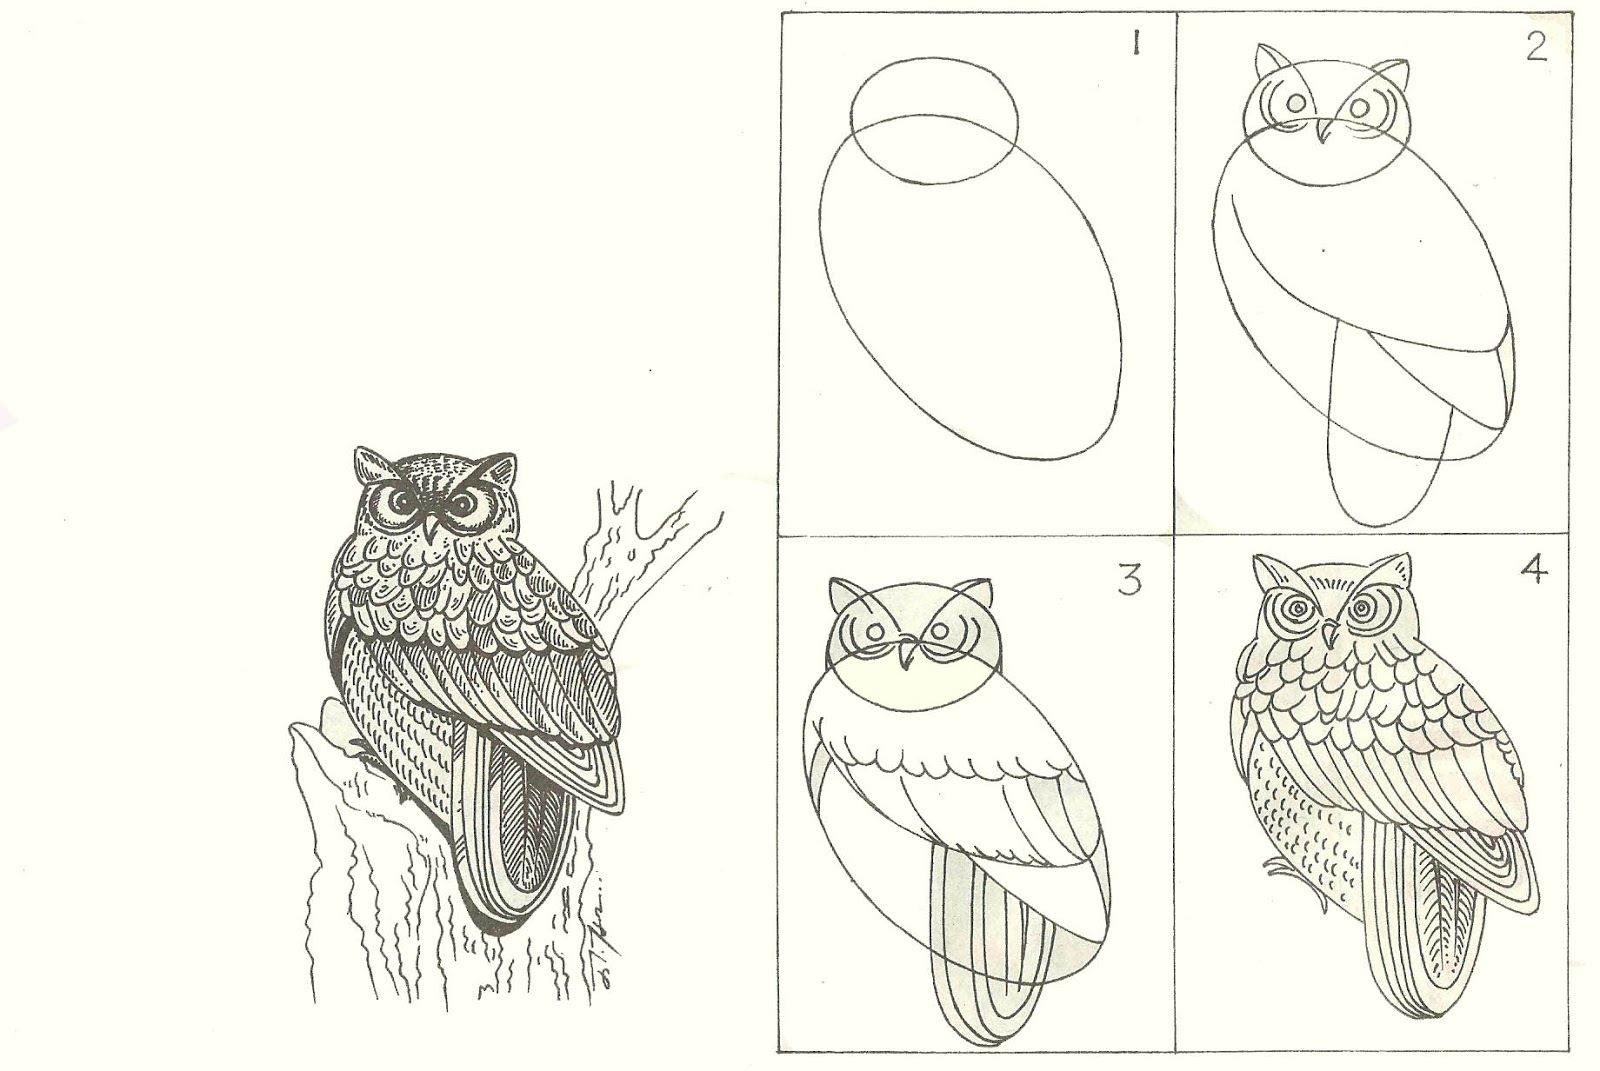 studentsdrawing: ANIMAL STEP BY STEP EASY OUTLINE DRAWING ...